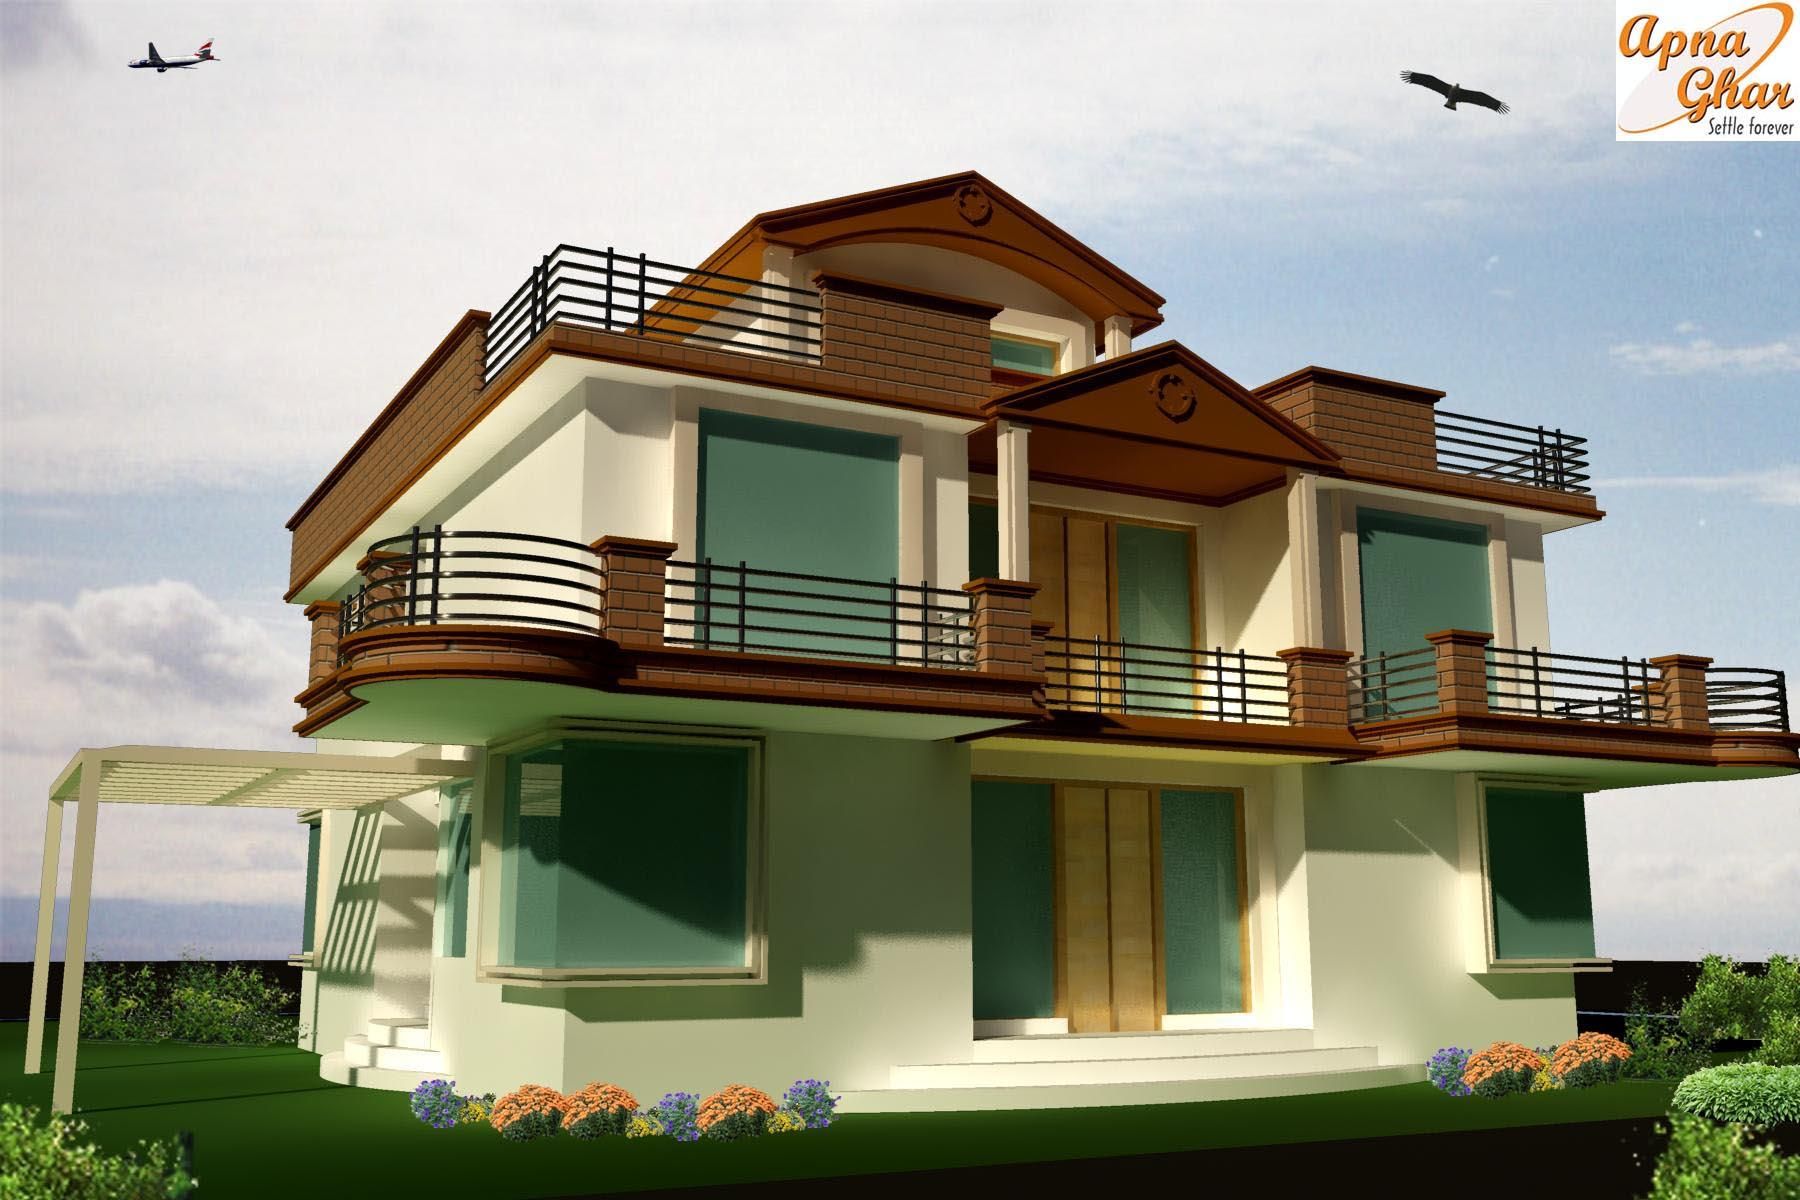 Beautiful home front elevation designs and ideas home Architecture design house plans 3d